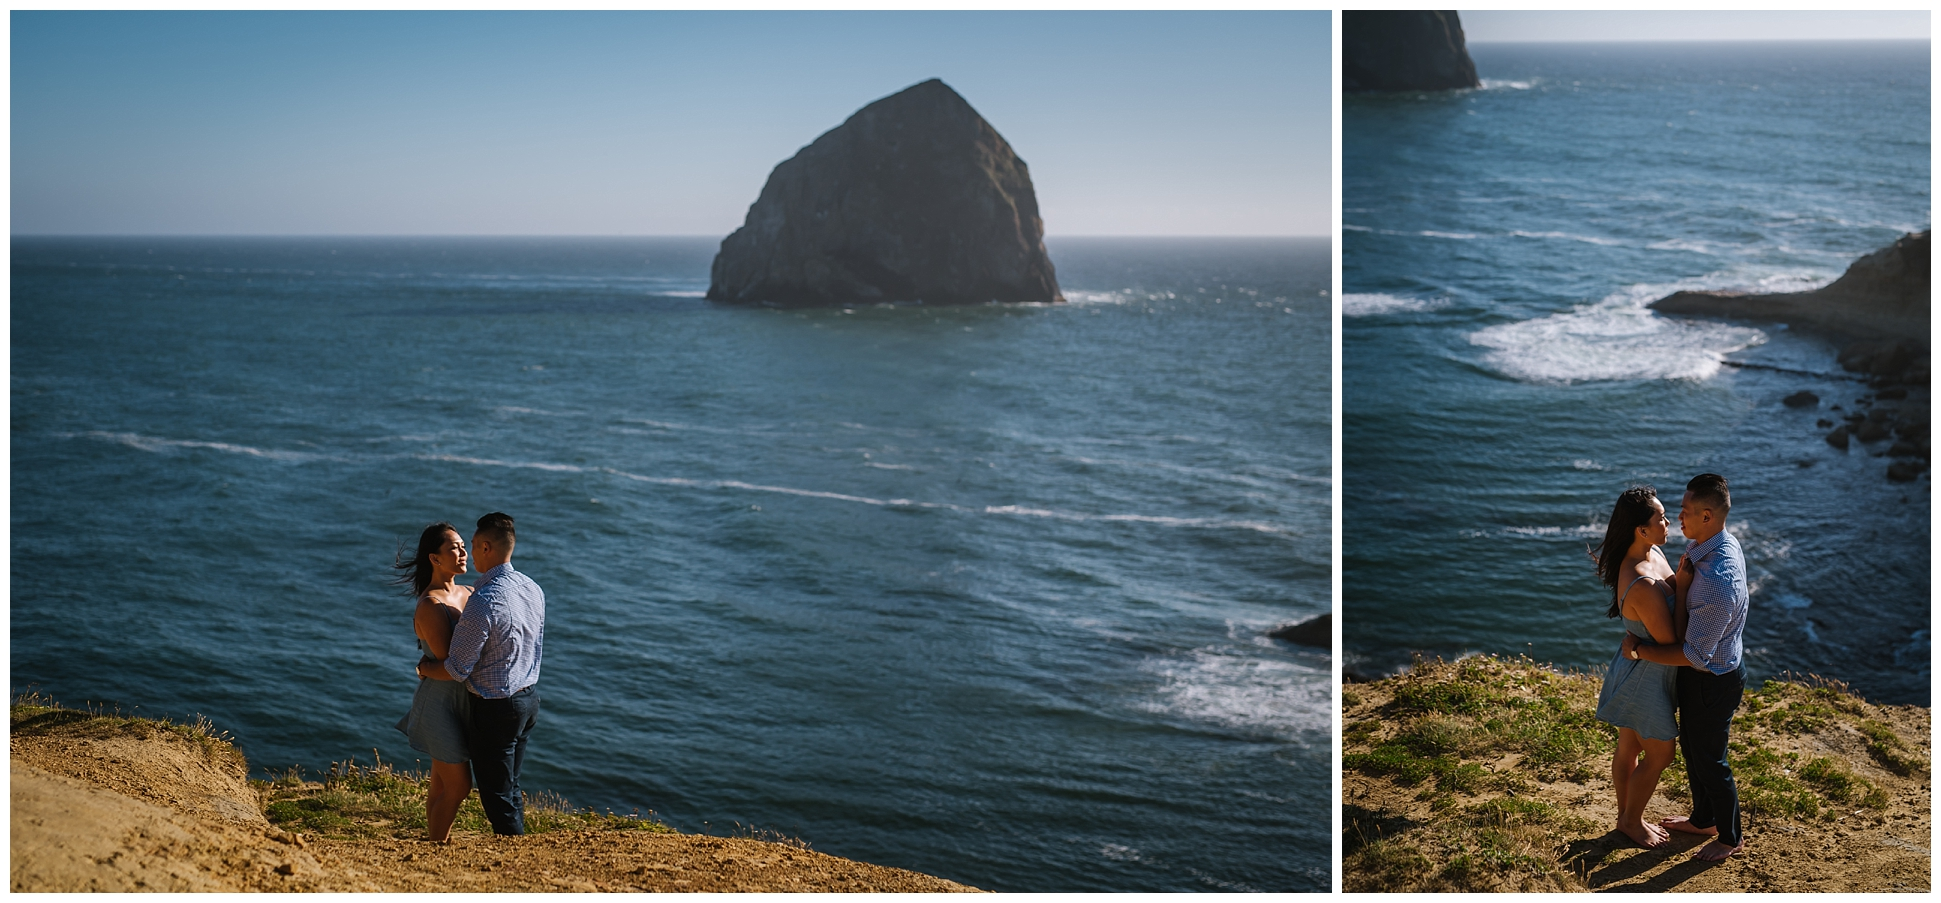 Cape-kiwanda-bridal-portrait-destination-wedding-photographer_0005.jpg